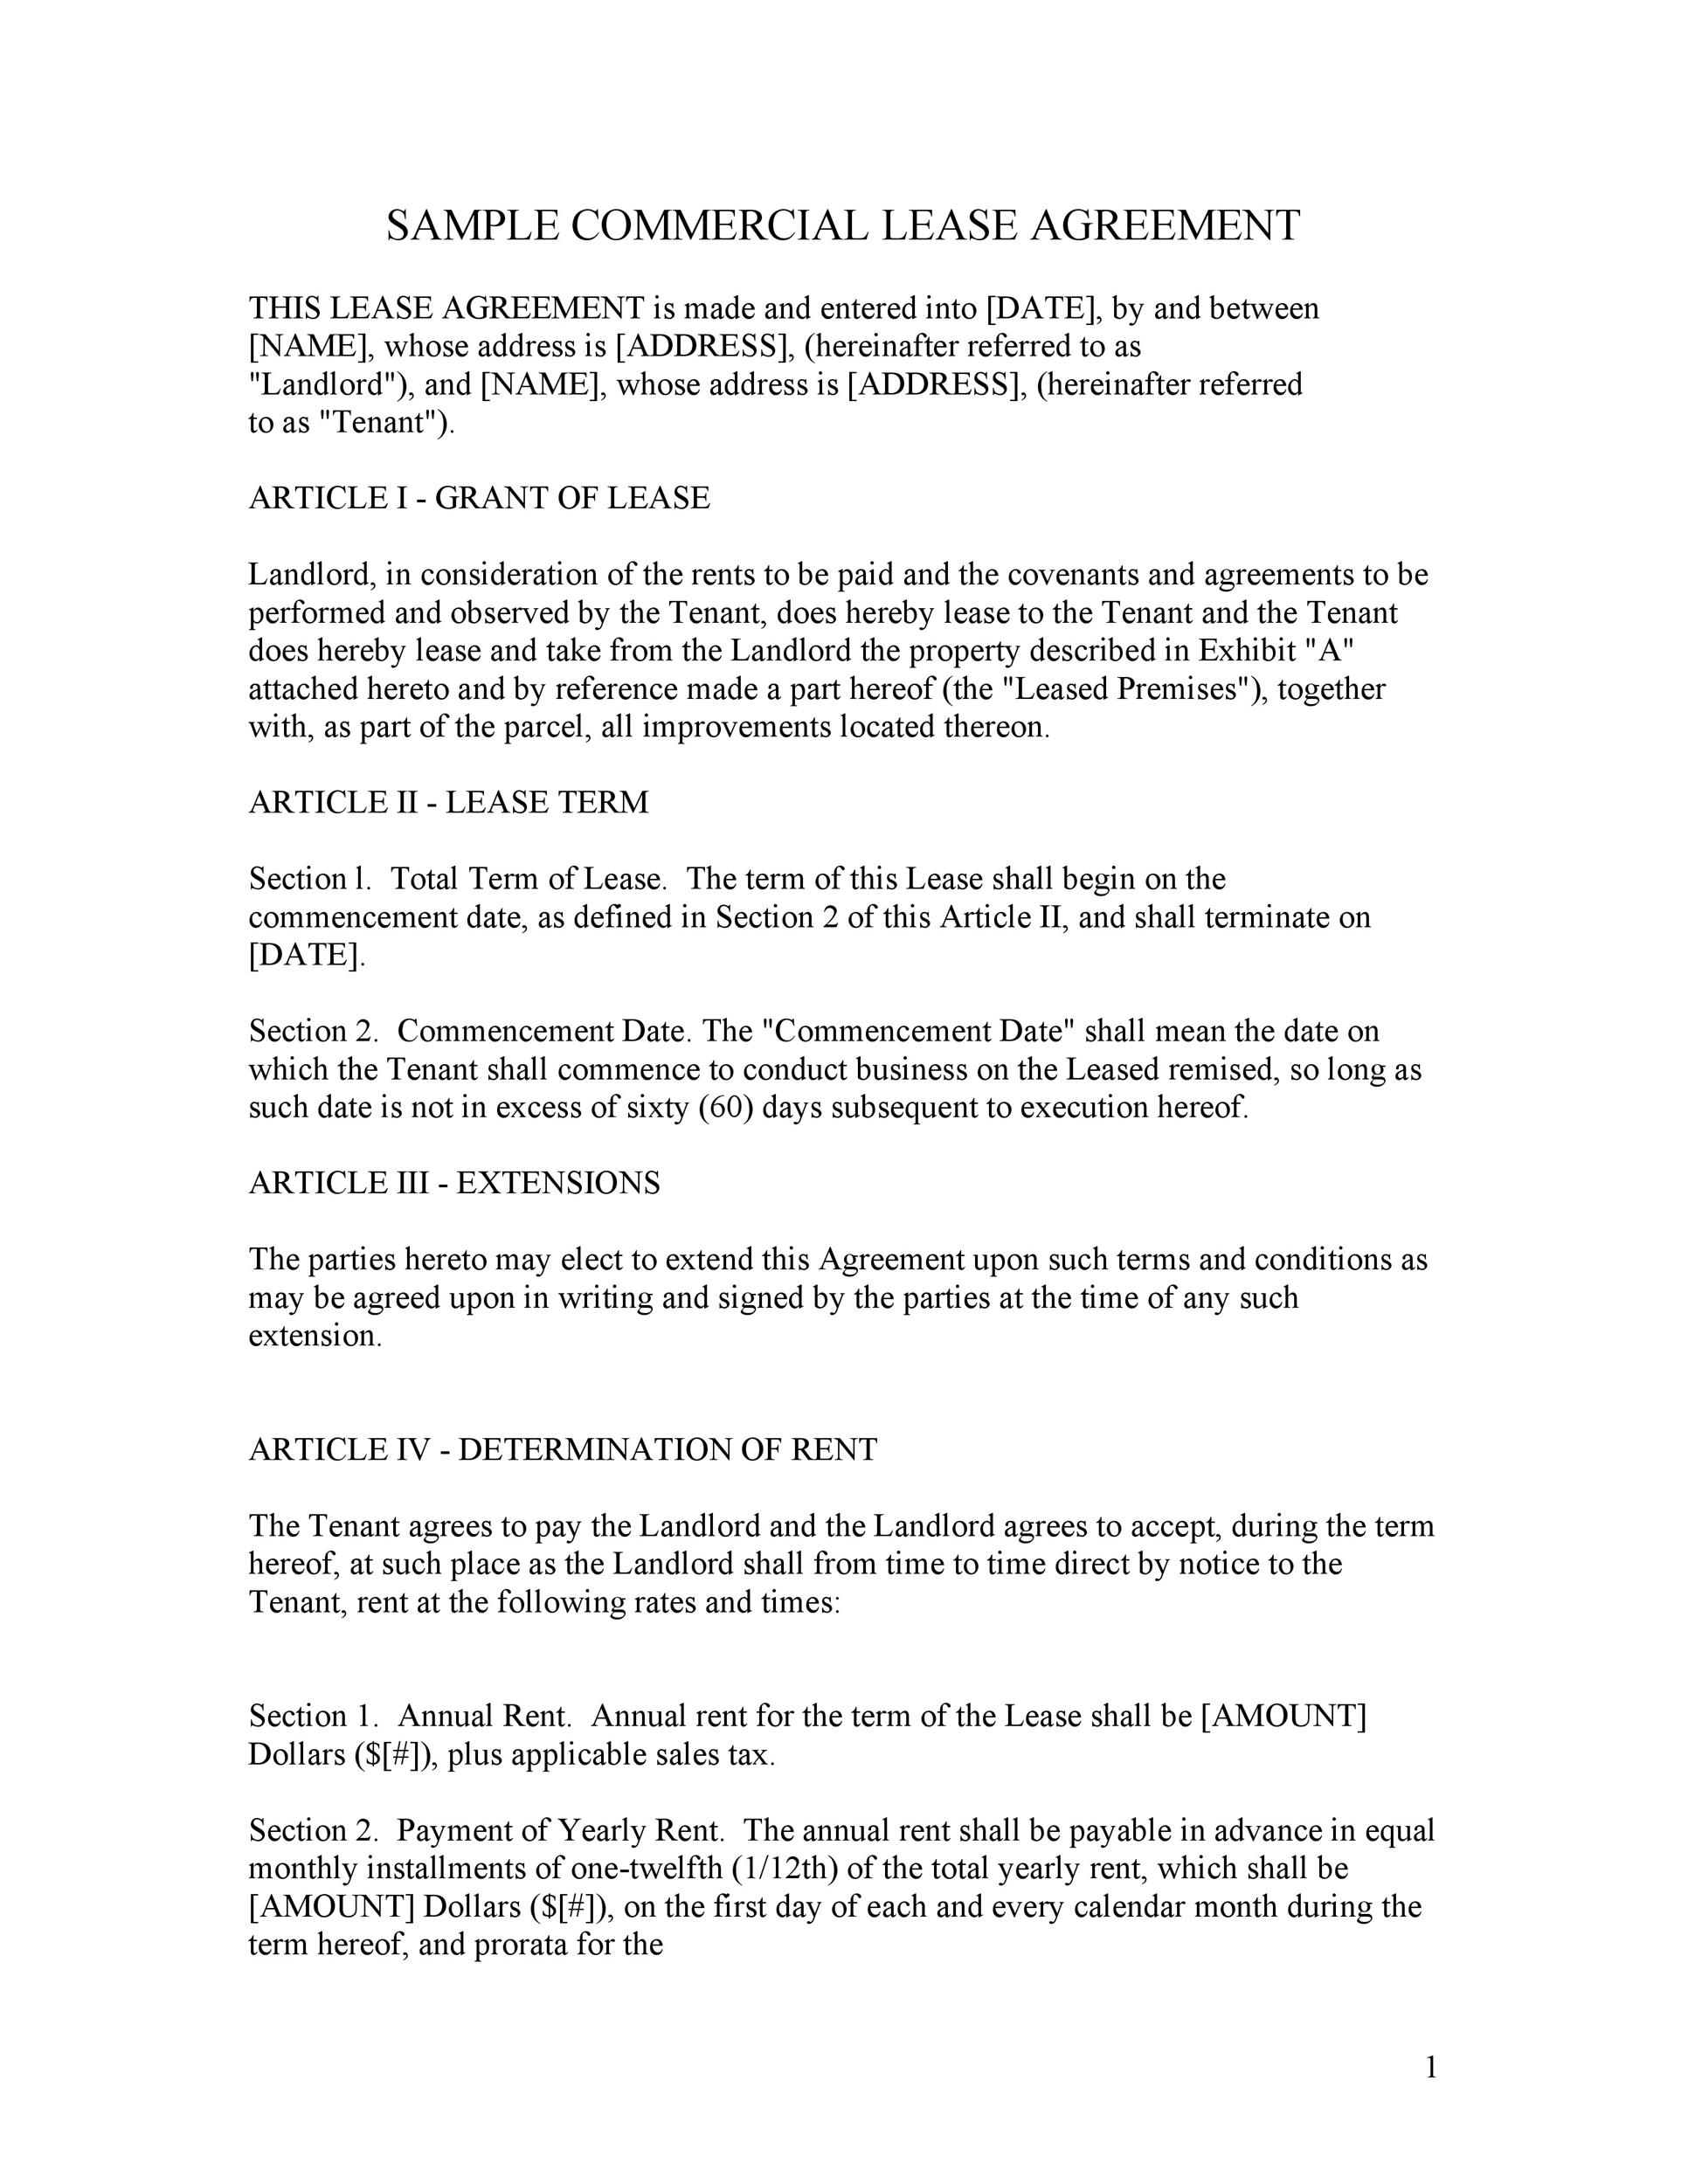 26 Free Commercial Lease Agreement Templates - Template Lab - Commercial Property Lease Agreement Free Template